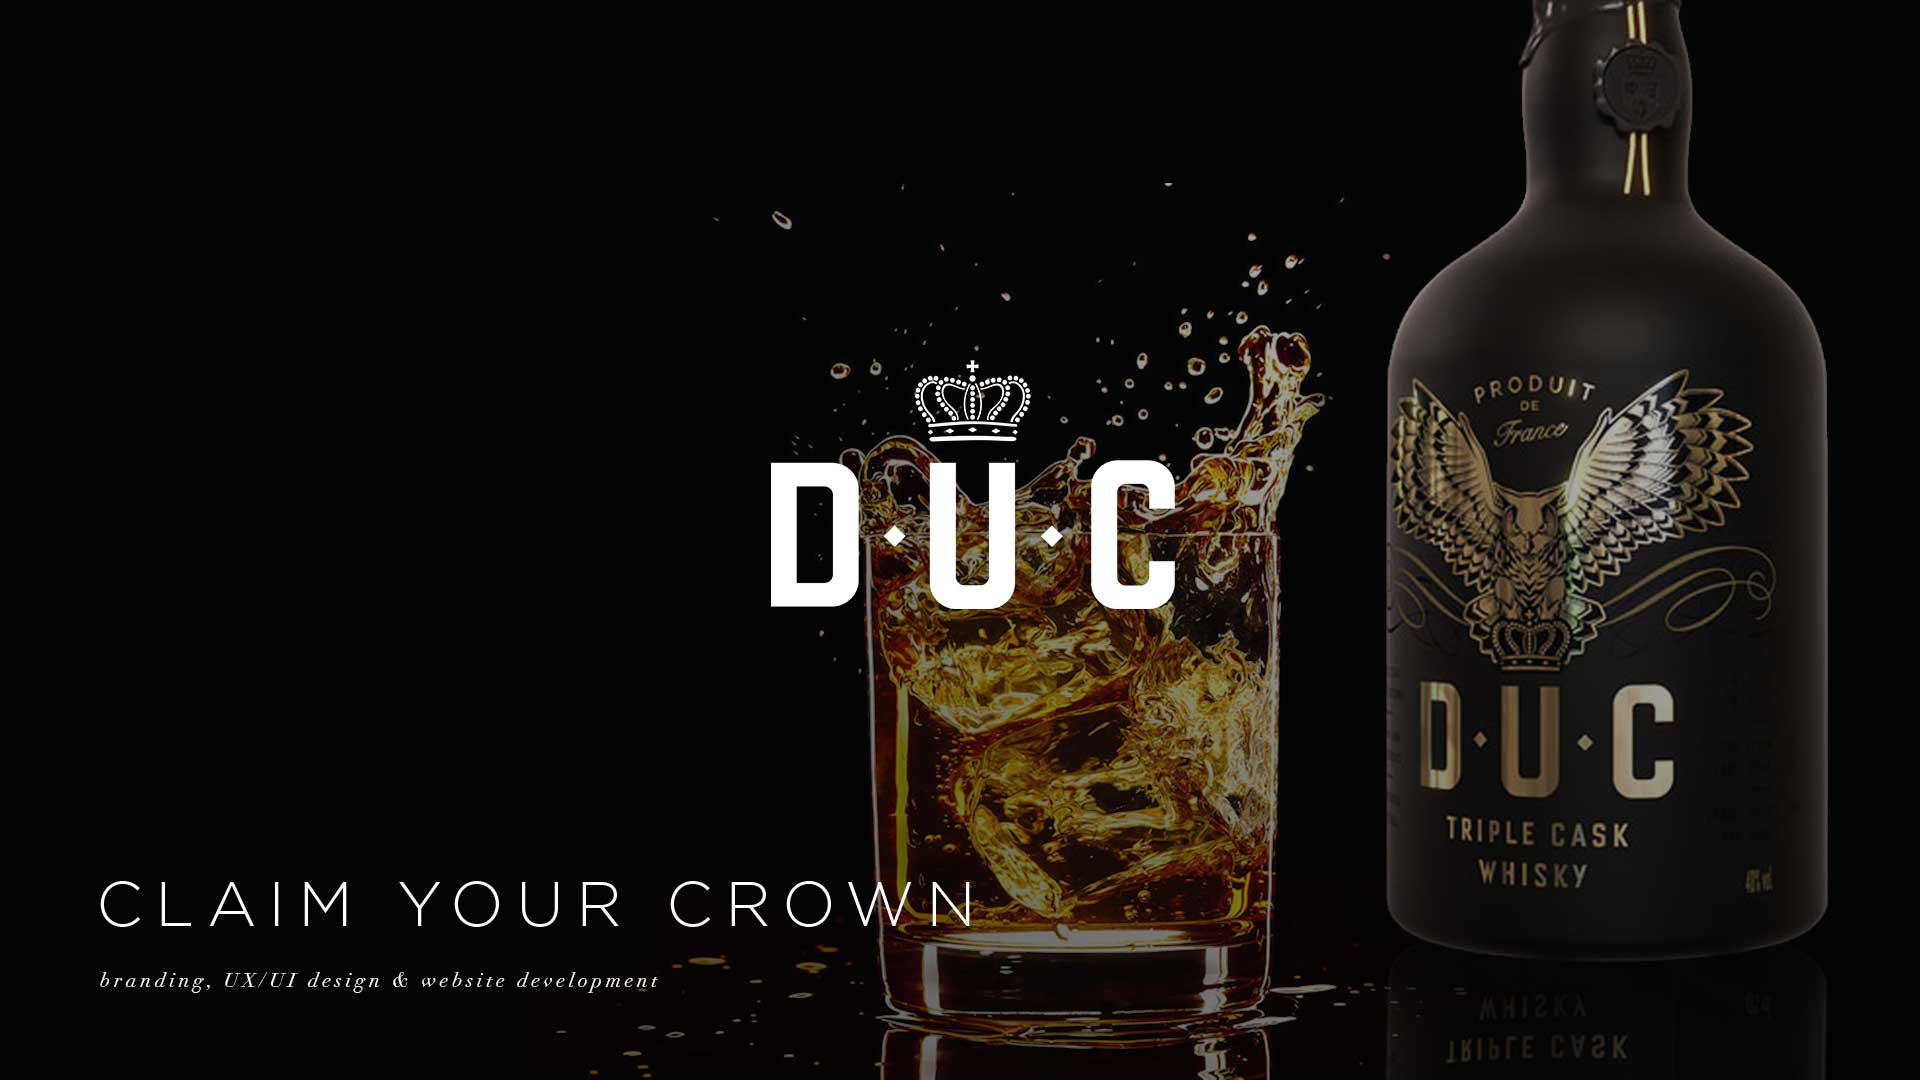 DUC, DUC whisky, DUC whisky website, web maintenance services, dukunoo jamaican kitchen, ecommerce, js home, splash page design, ecommerce website design, best agency websites, web design development company, website redesign company